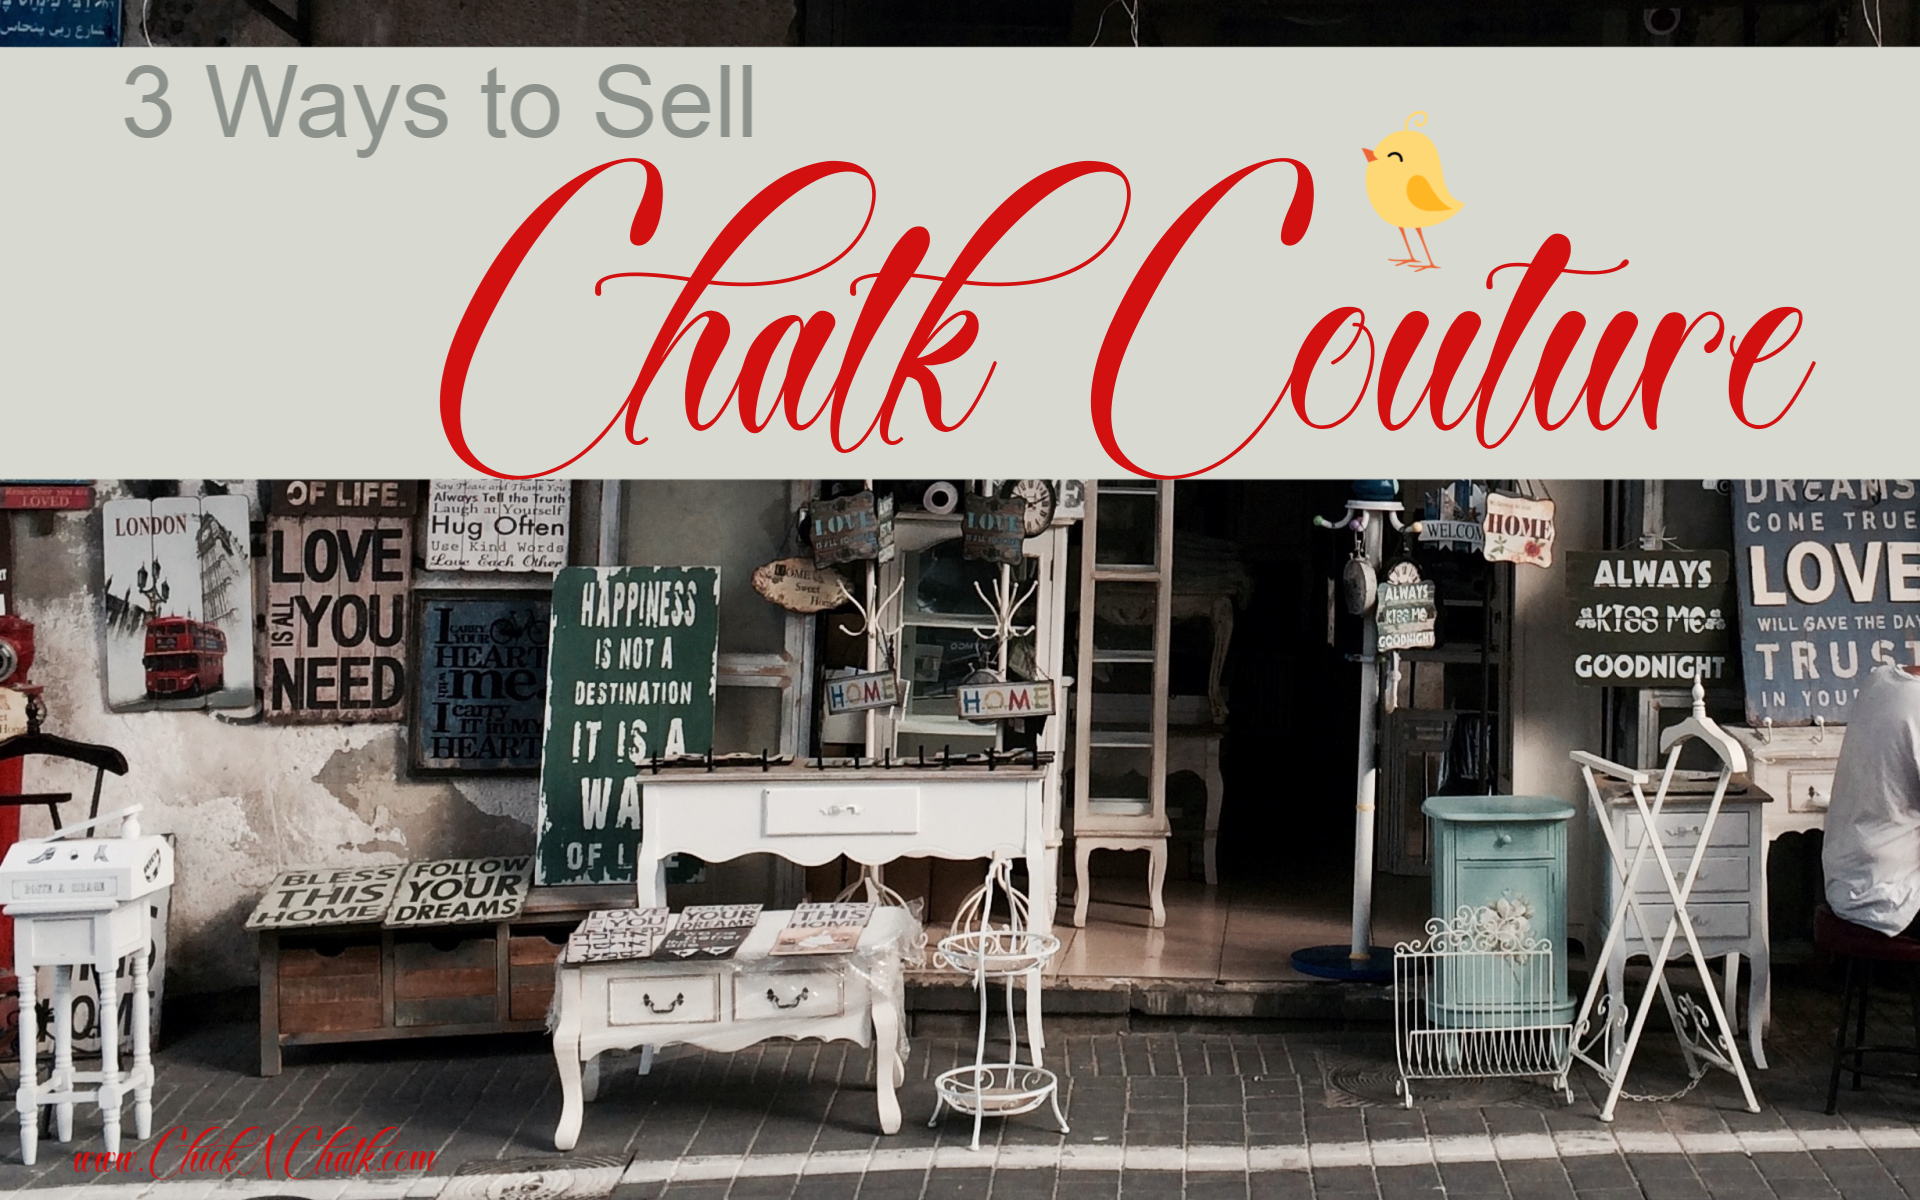 Ways to Sell Chalk Couture in Canada